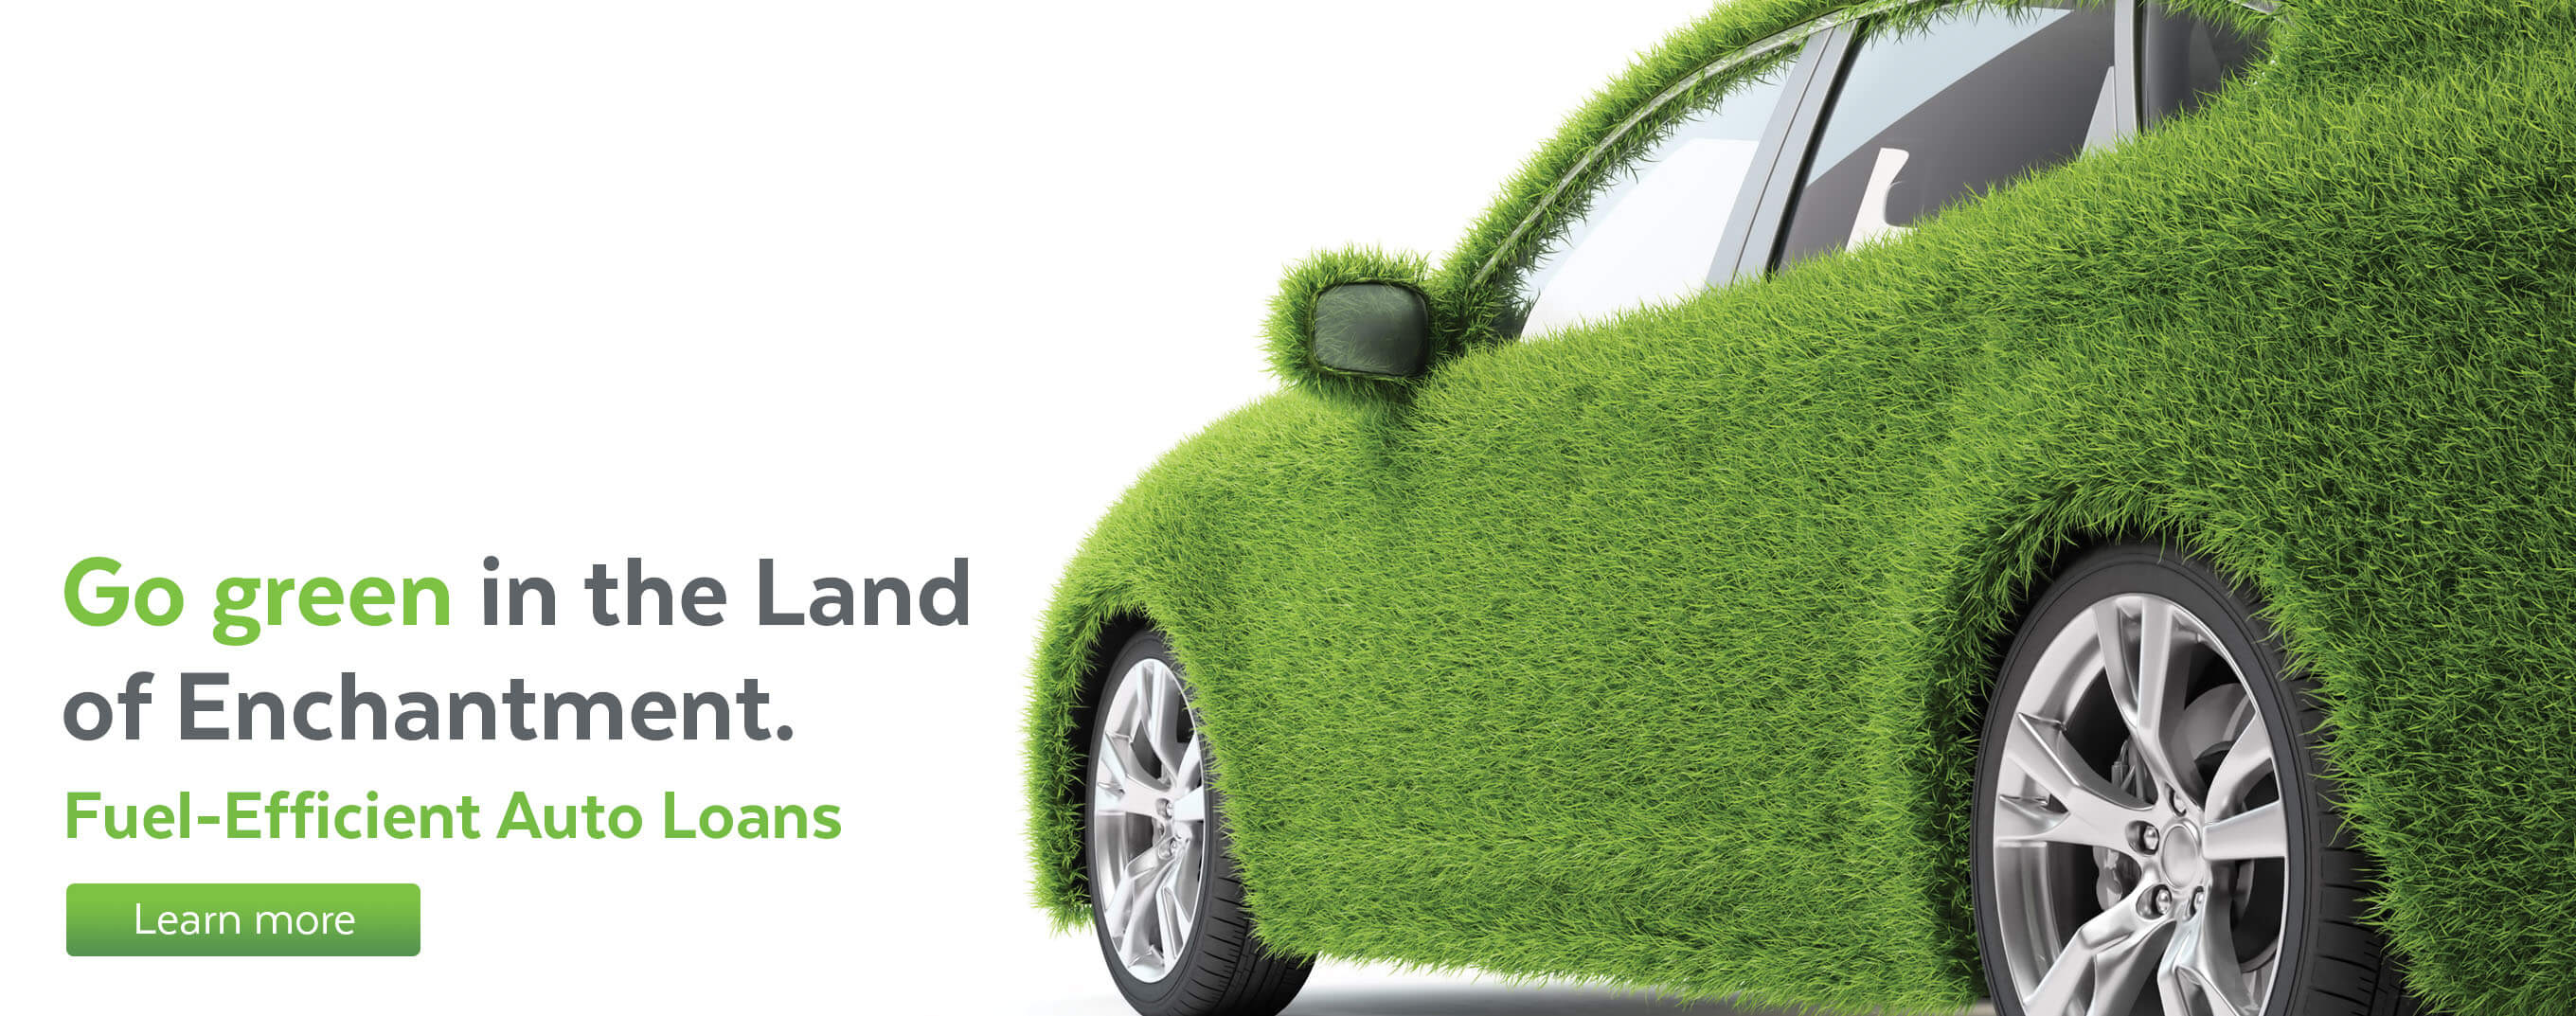 Go green in the Land of Enchantment. Learn more about fuel-efficient auto loans.